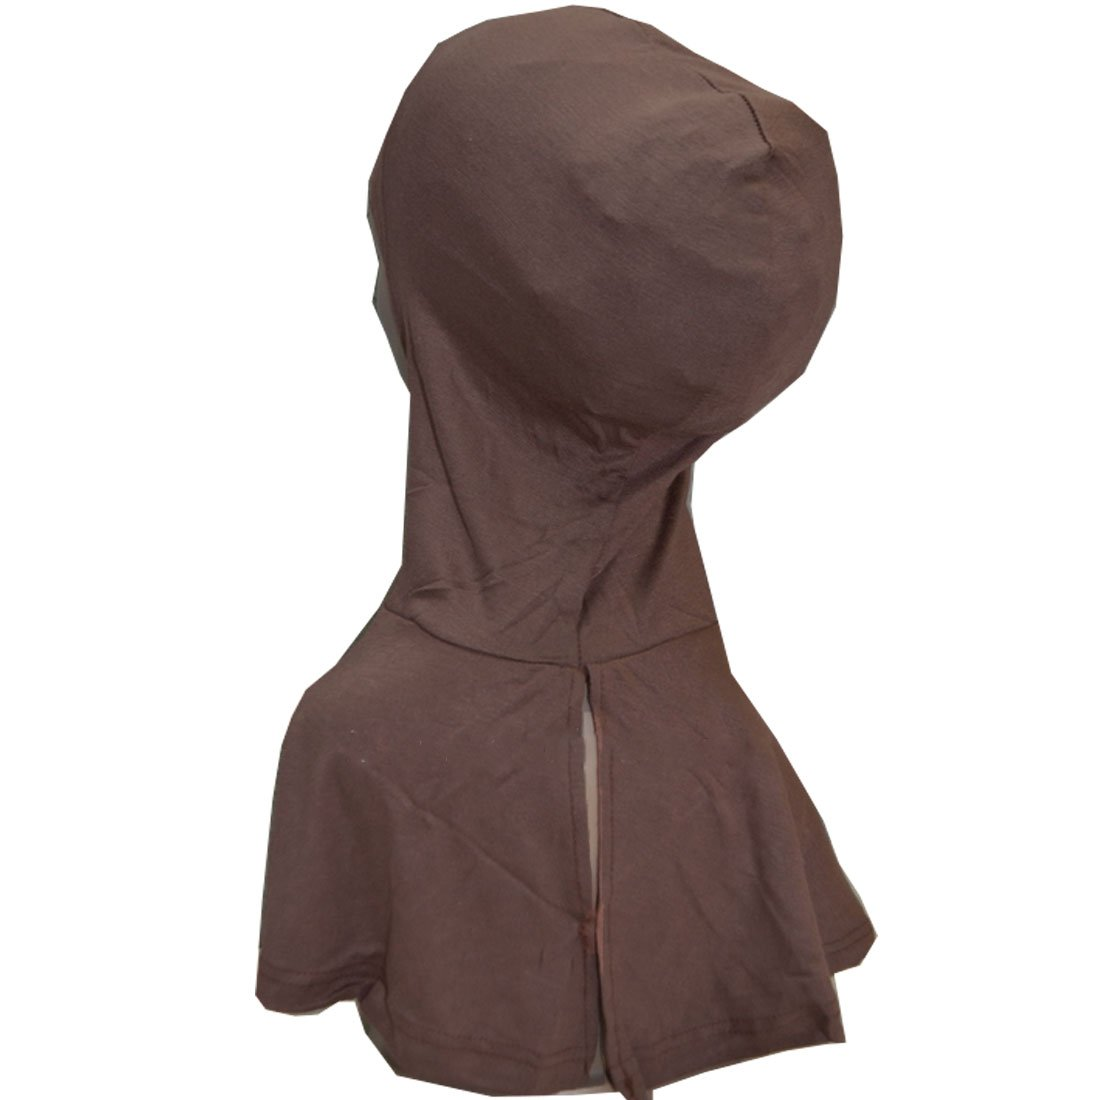 Hayaa Clothing Ninja Underscarf Hijab Neck Cover with Back Slit